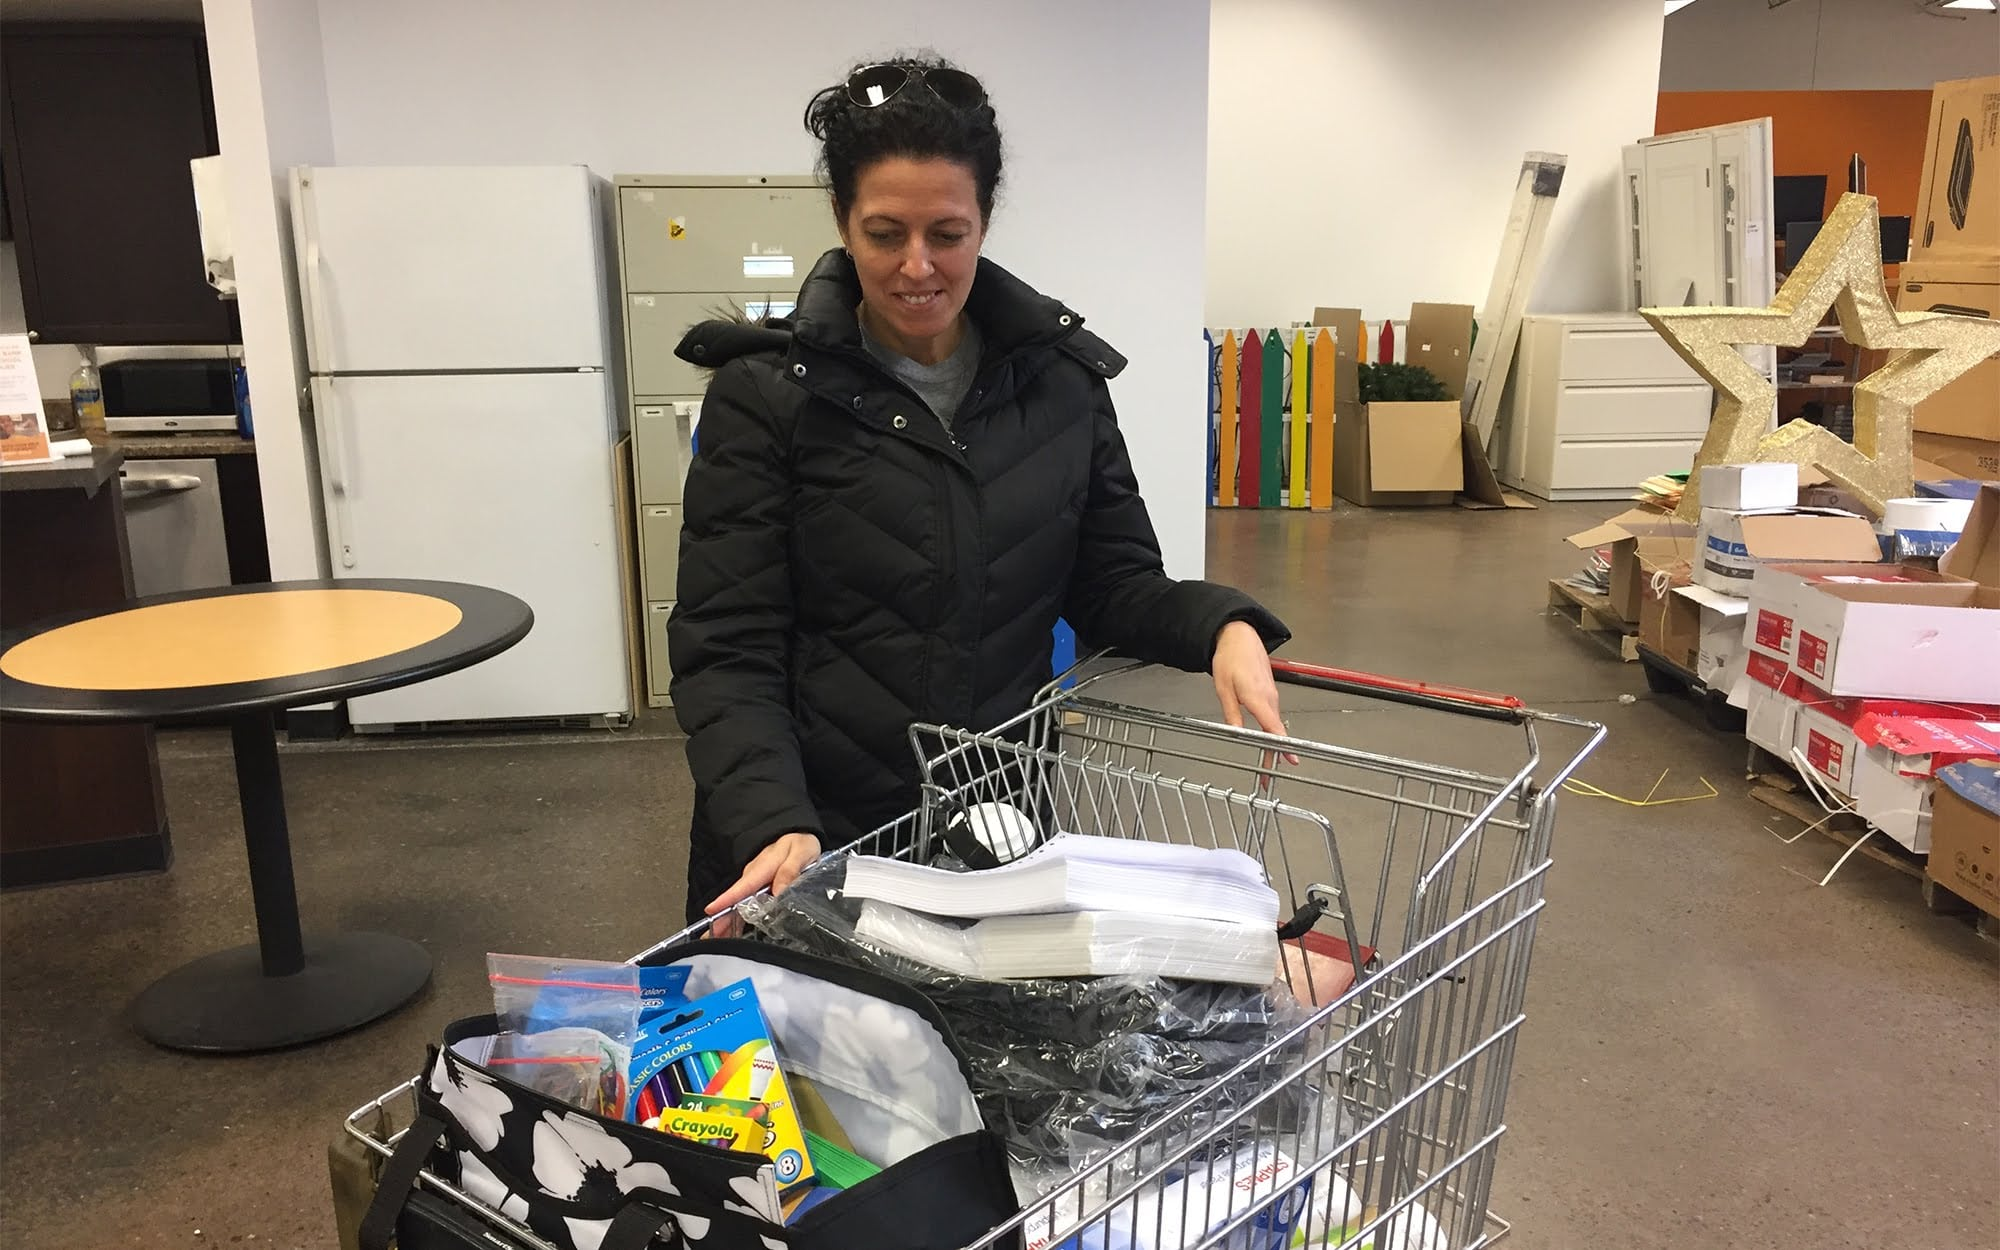 Sherri Koger, a second-grade teacher at Sto-Rox Primary Center, leaves The Education Partnership distribution on March 10 with a cart full of supplies for her students.